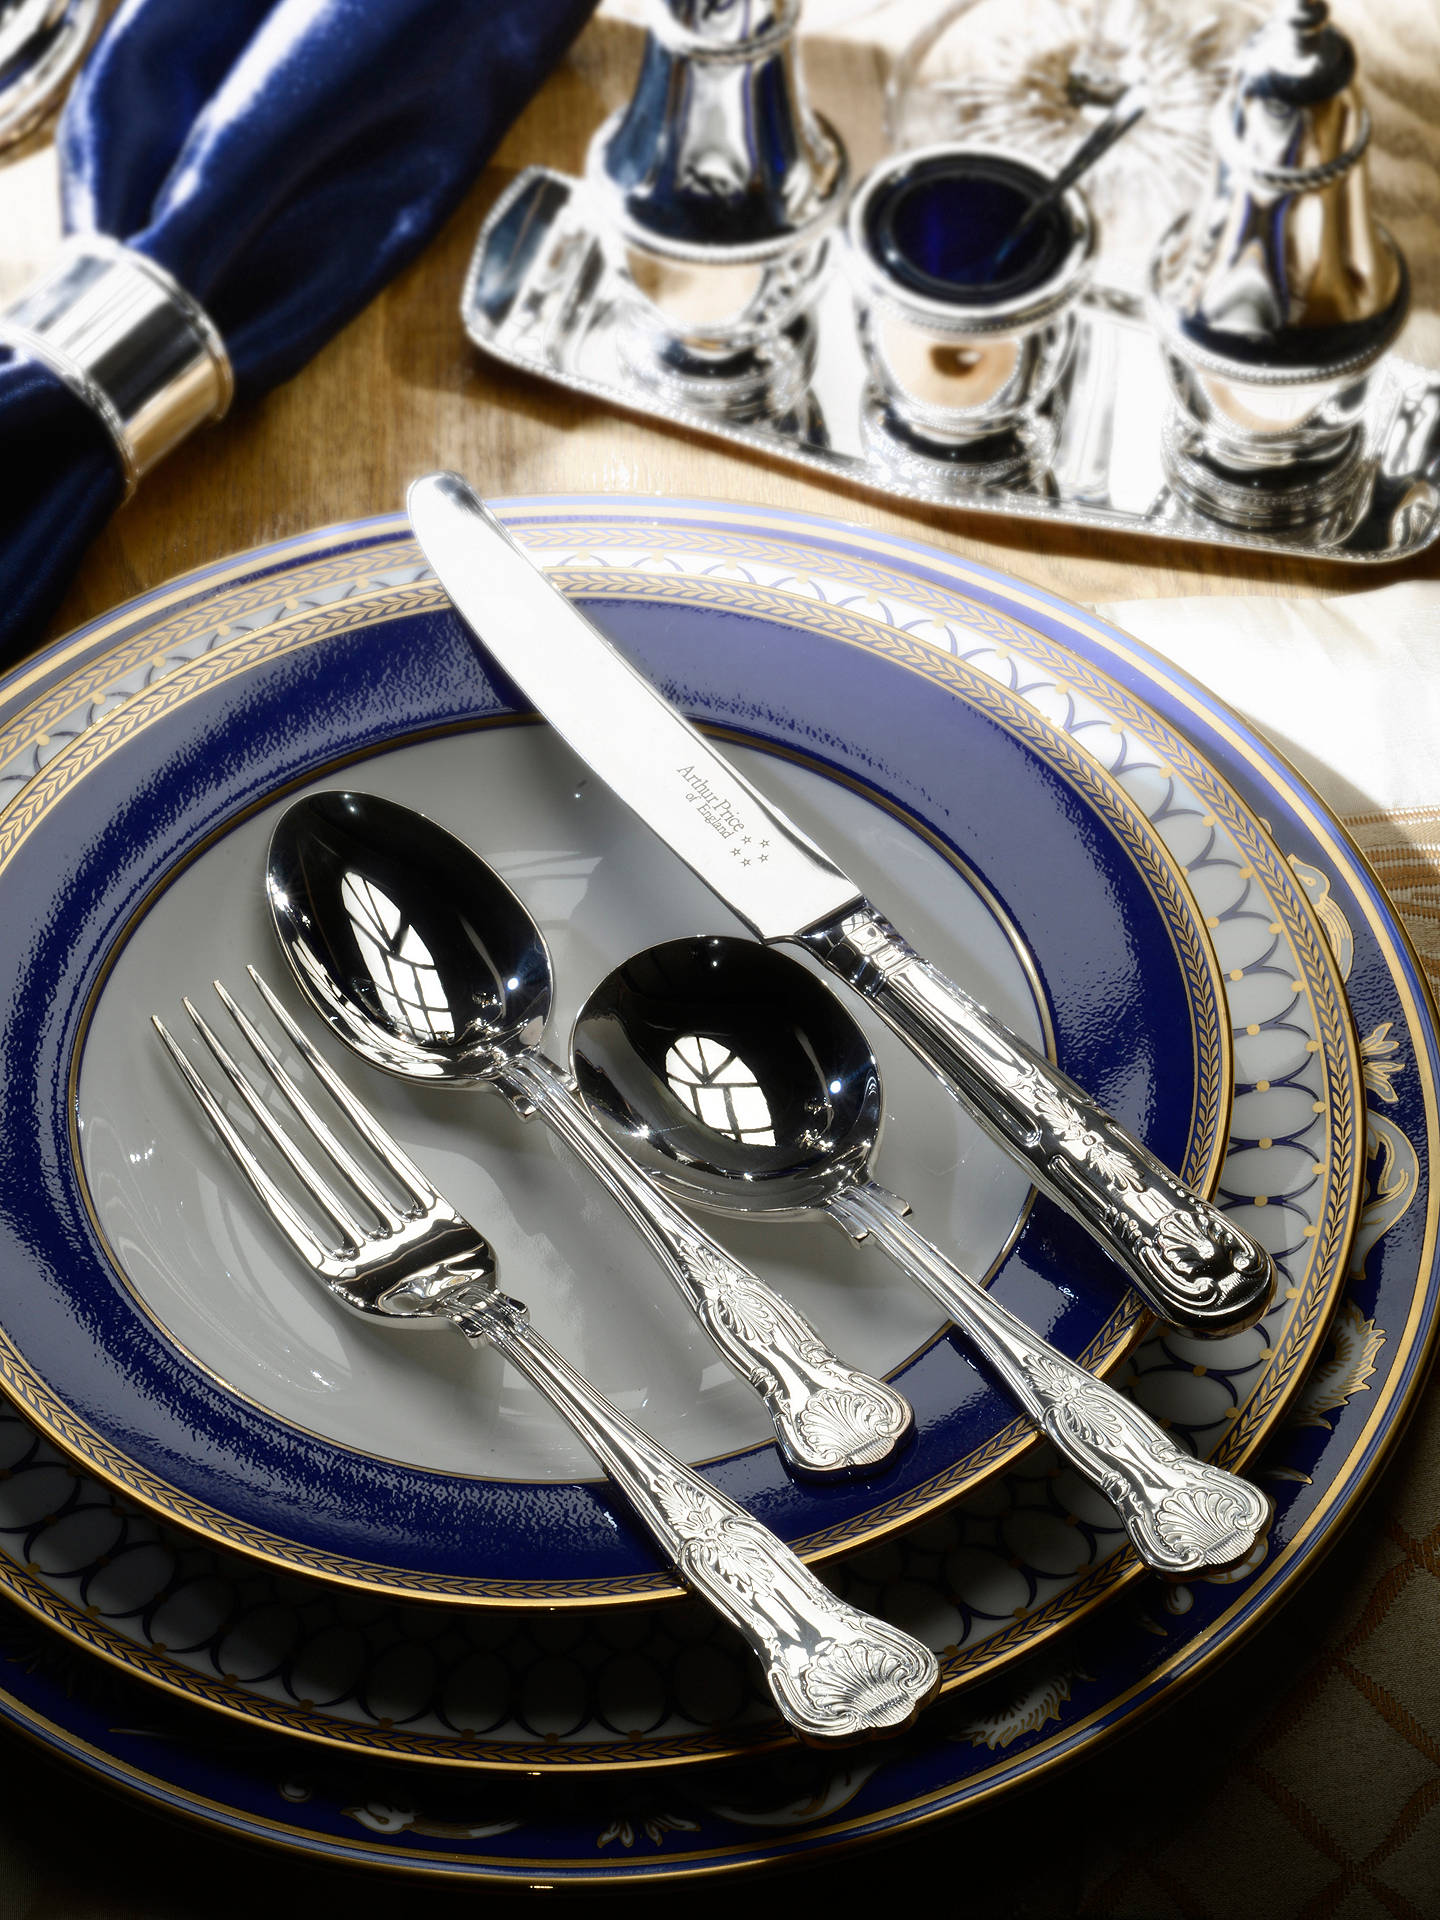 Buy Arthur Price Kings Cutlery Canteen, Silver Plated, 124 Piece Online at johnlewis.com